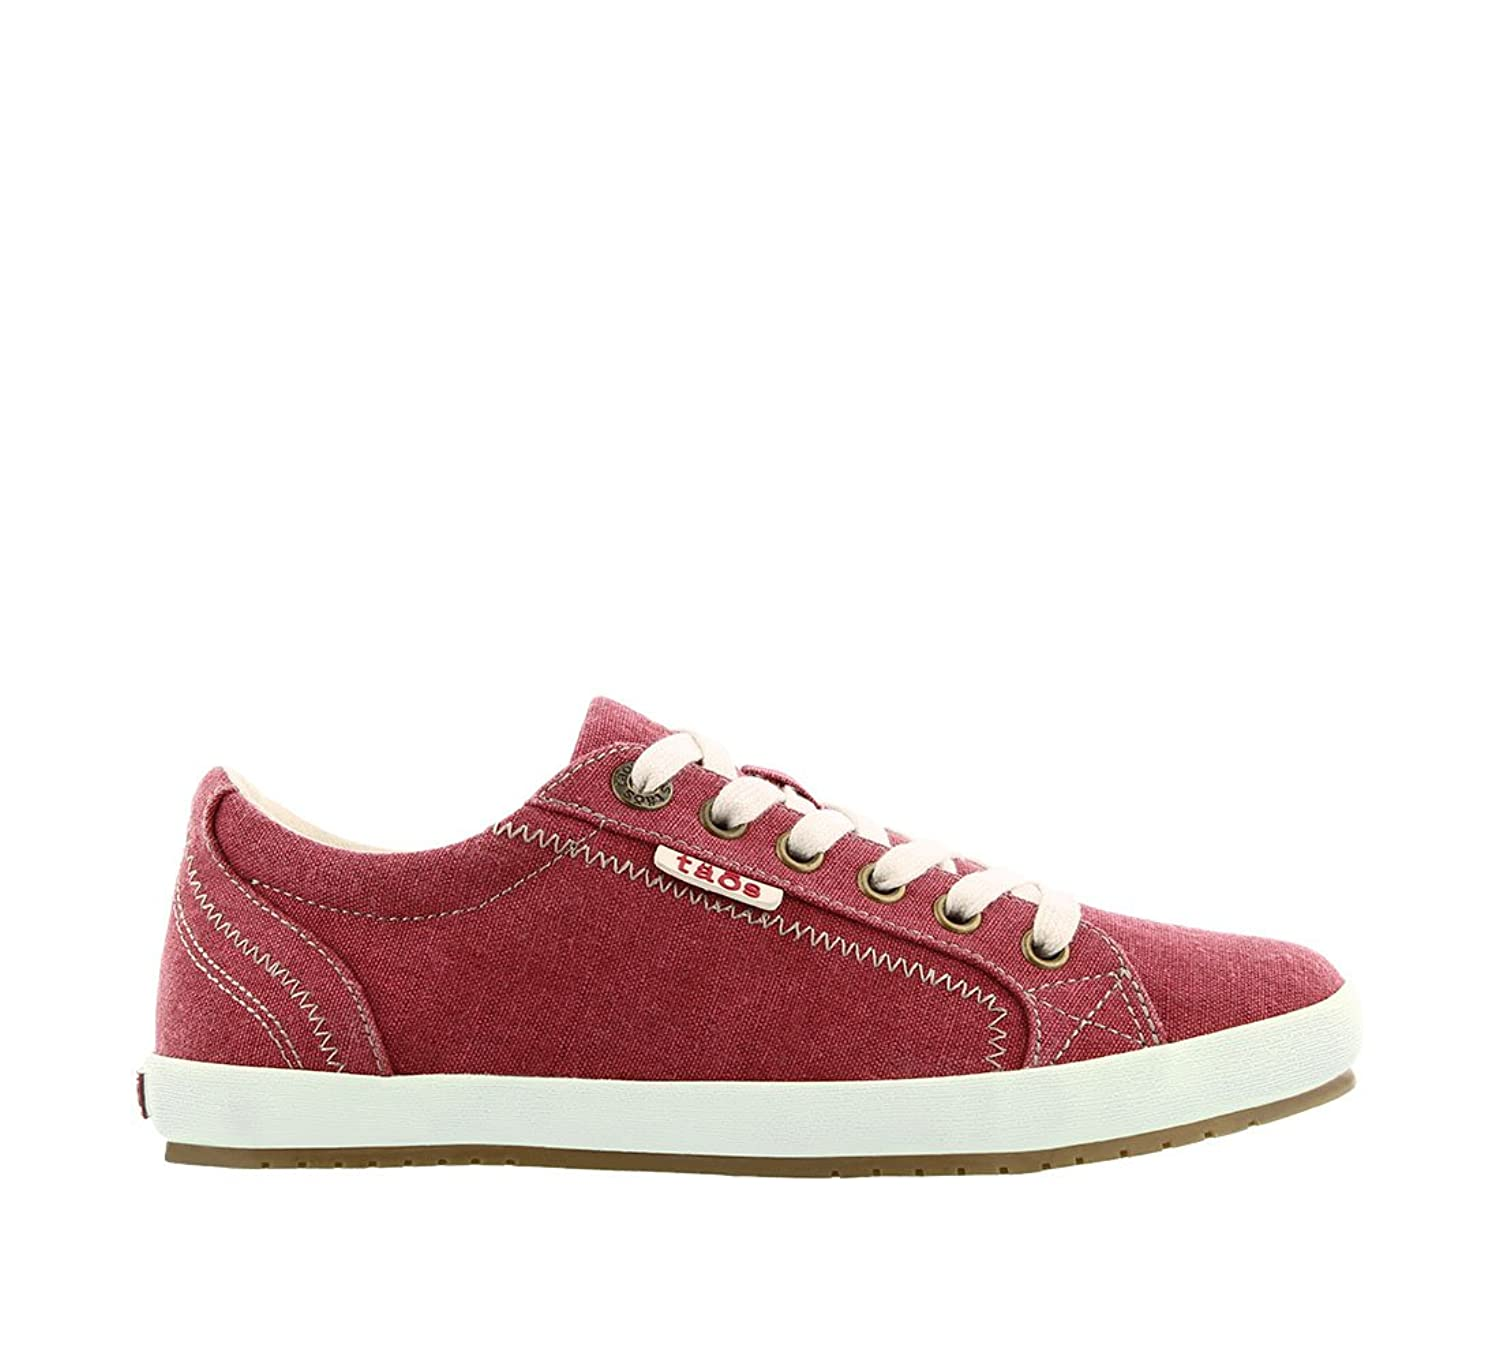 Amazon.com | Taos Women's Star Ruby Red Washed Canvas Sneaker 7.5 B (M) US  | Oxfords